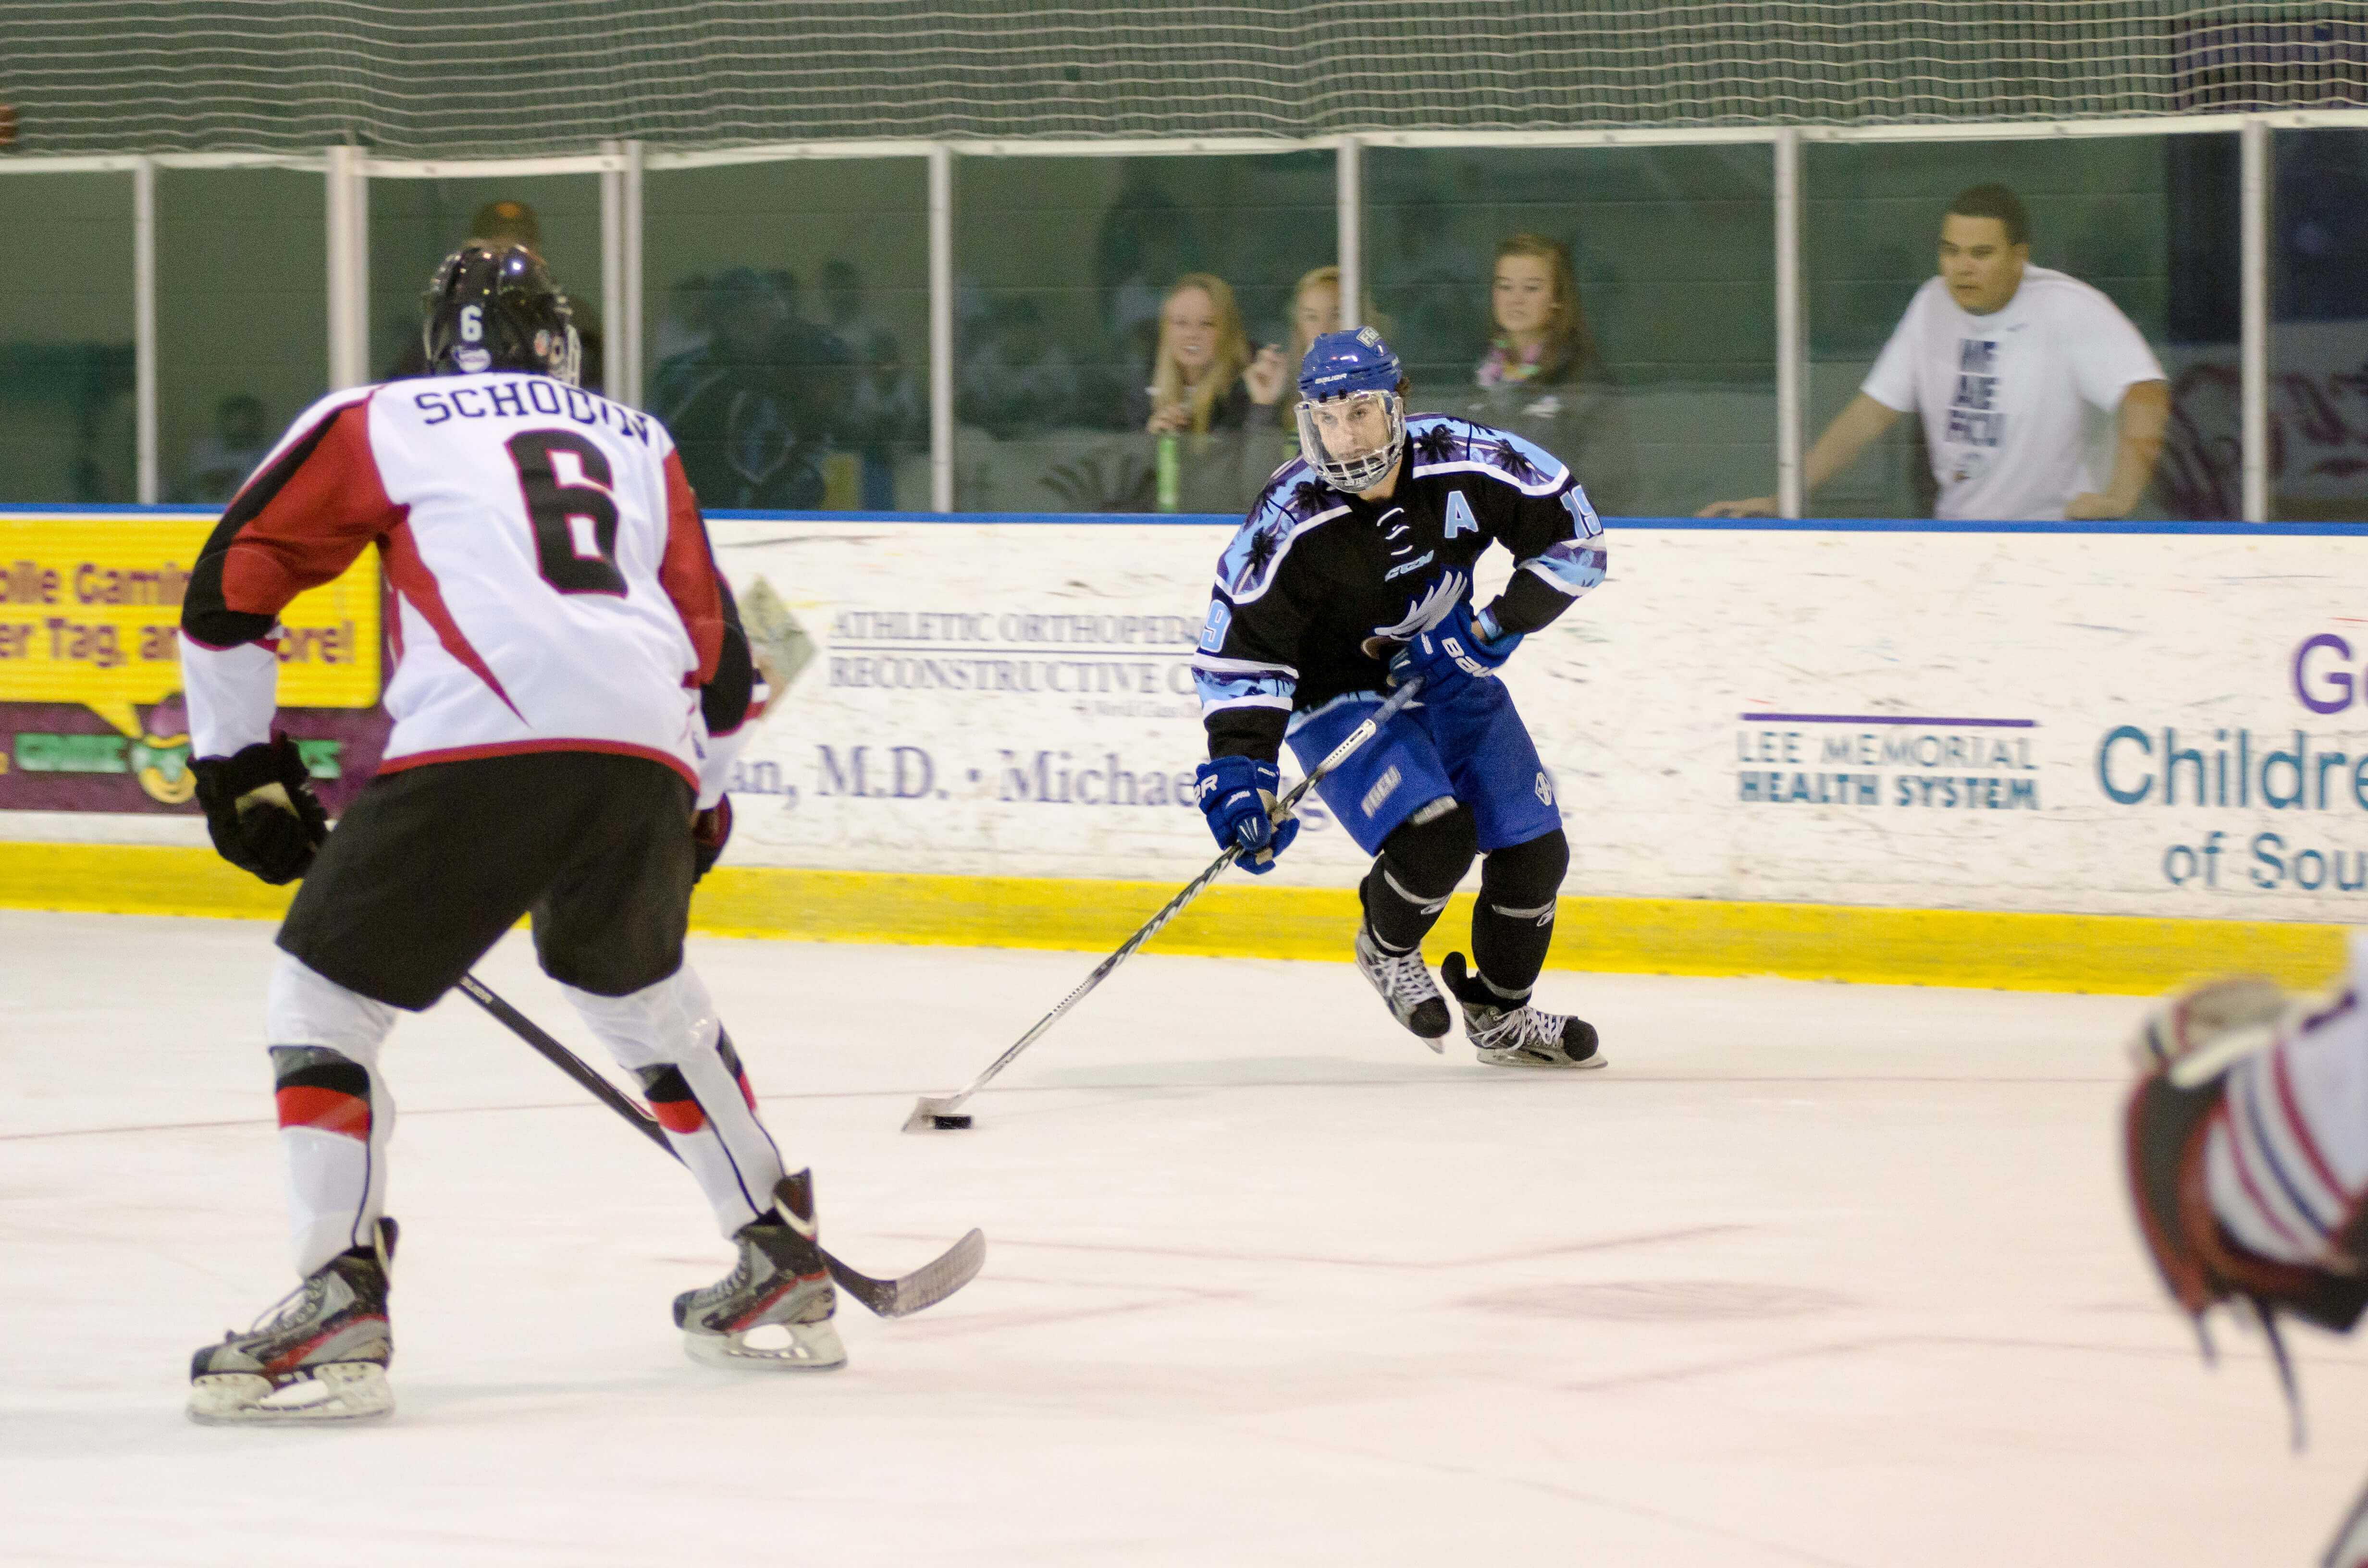 Grad student Nick Houser is making big plays  for the Eagles in the 2014-15 season